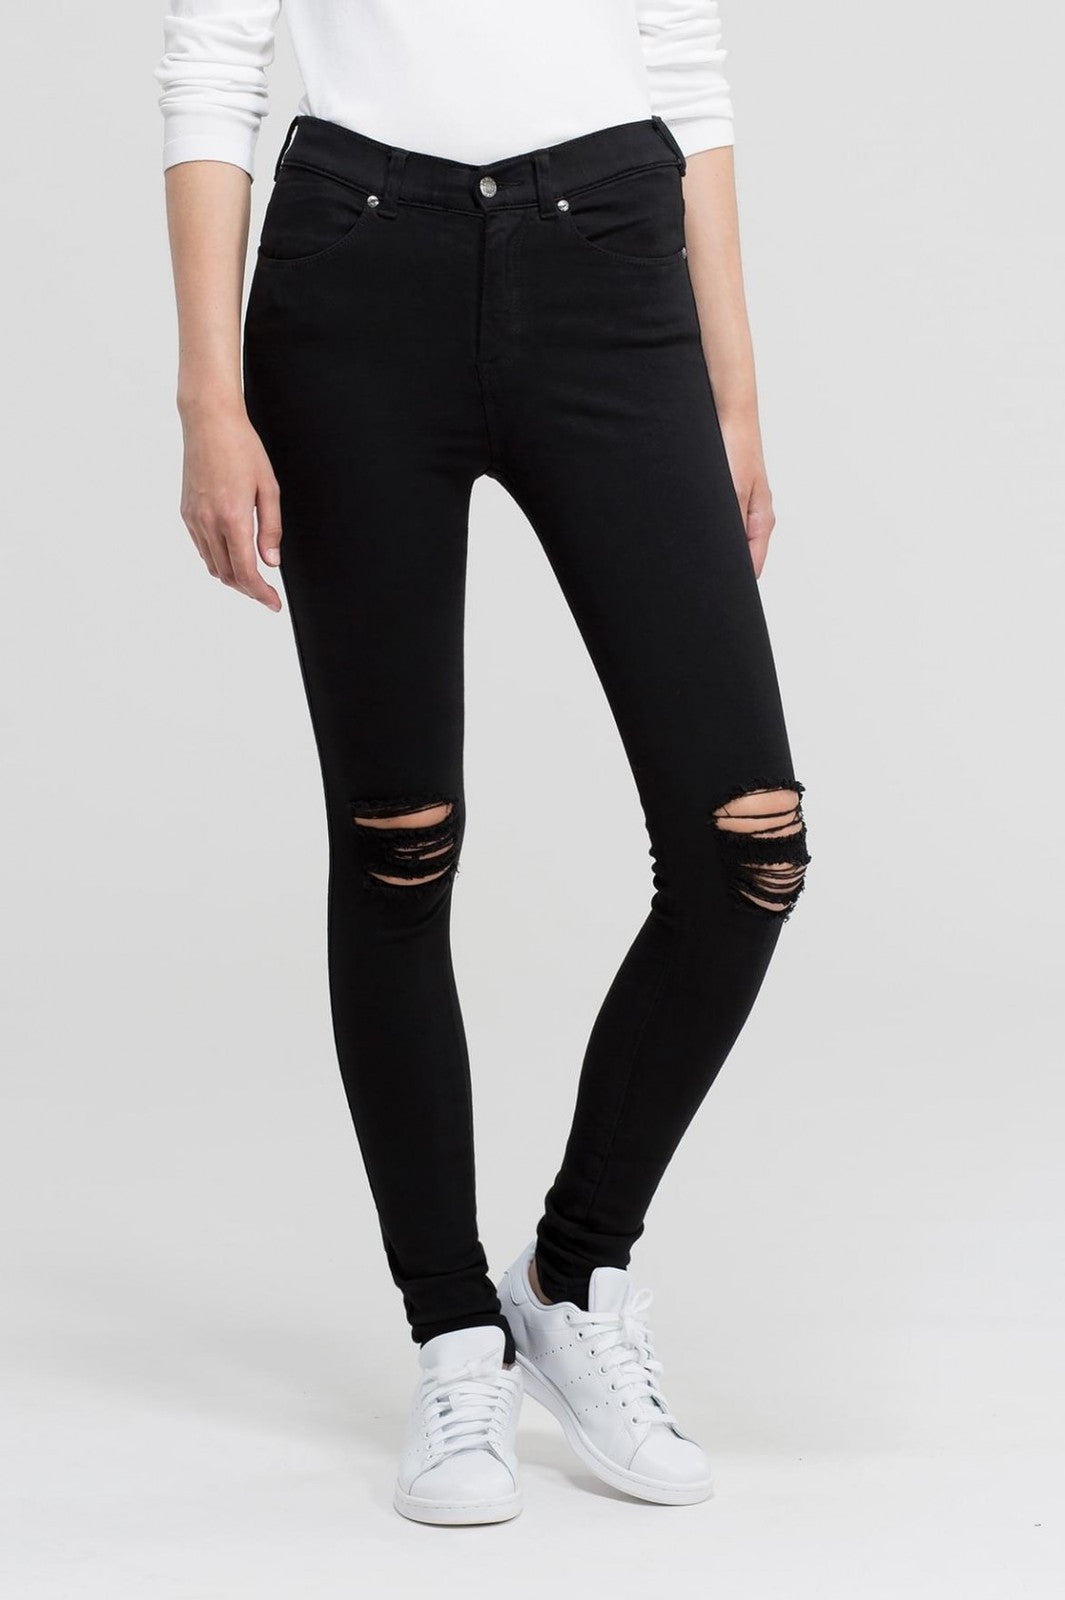 Lexy Jeans Black Ripped Knee